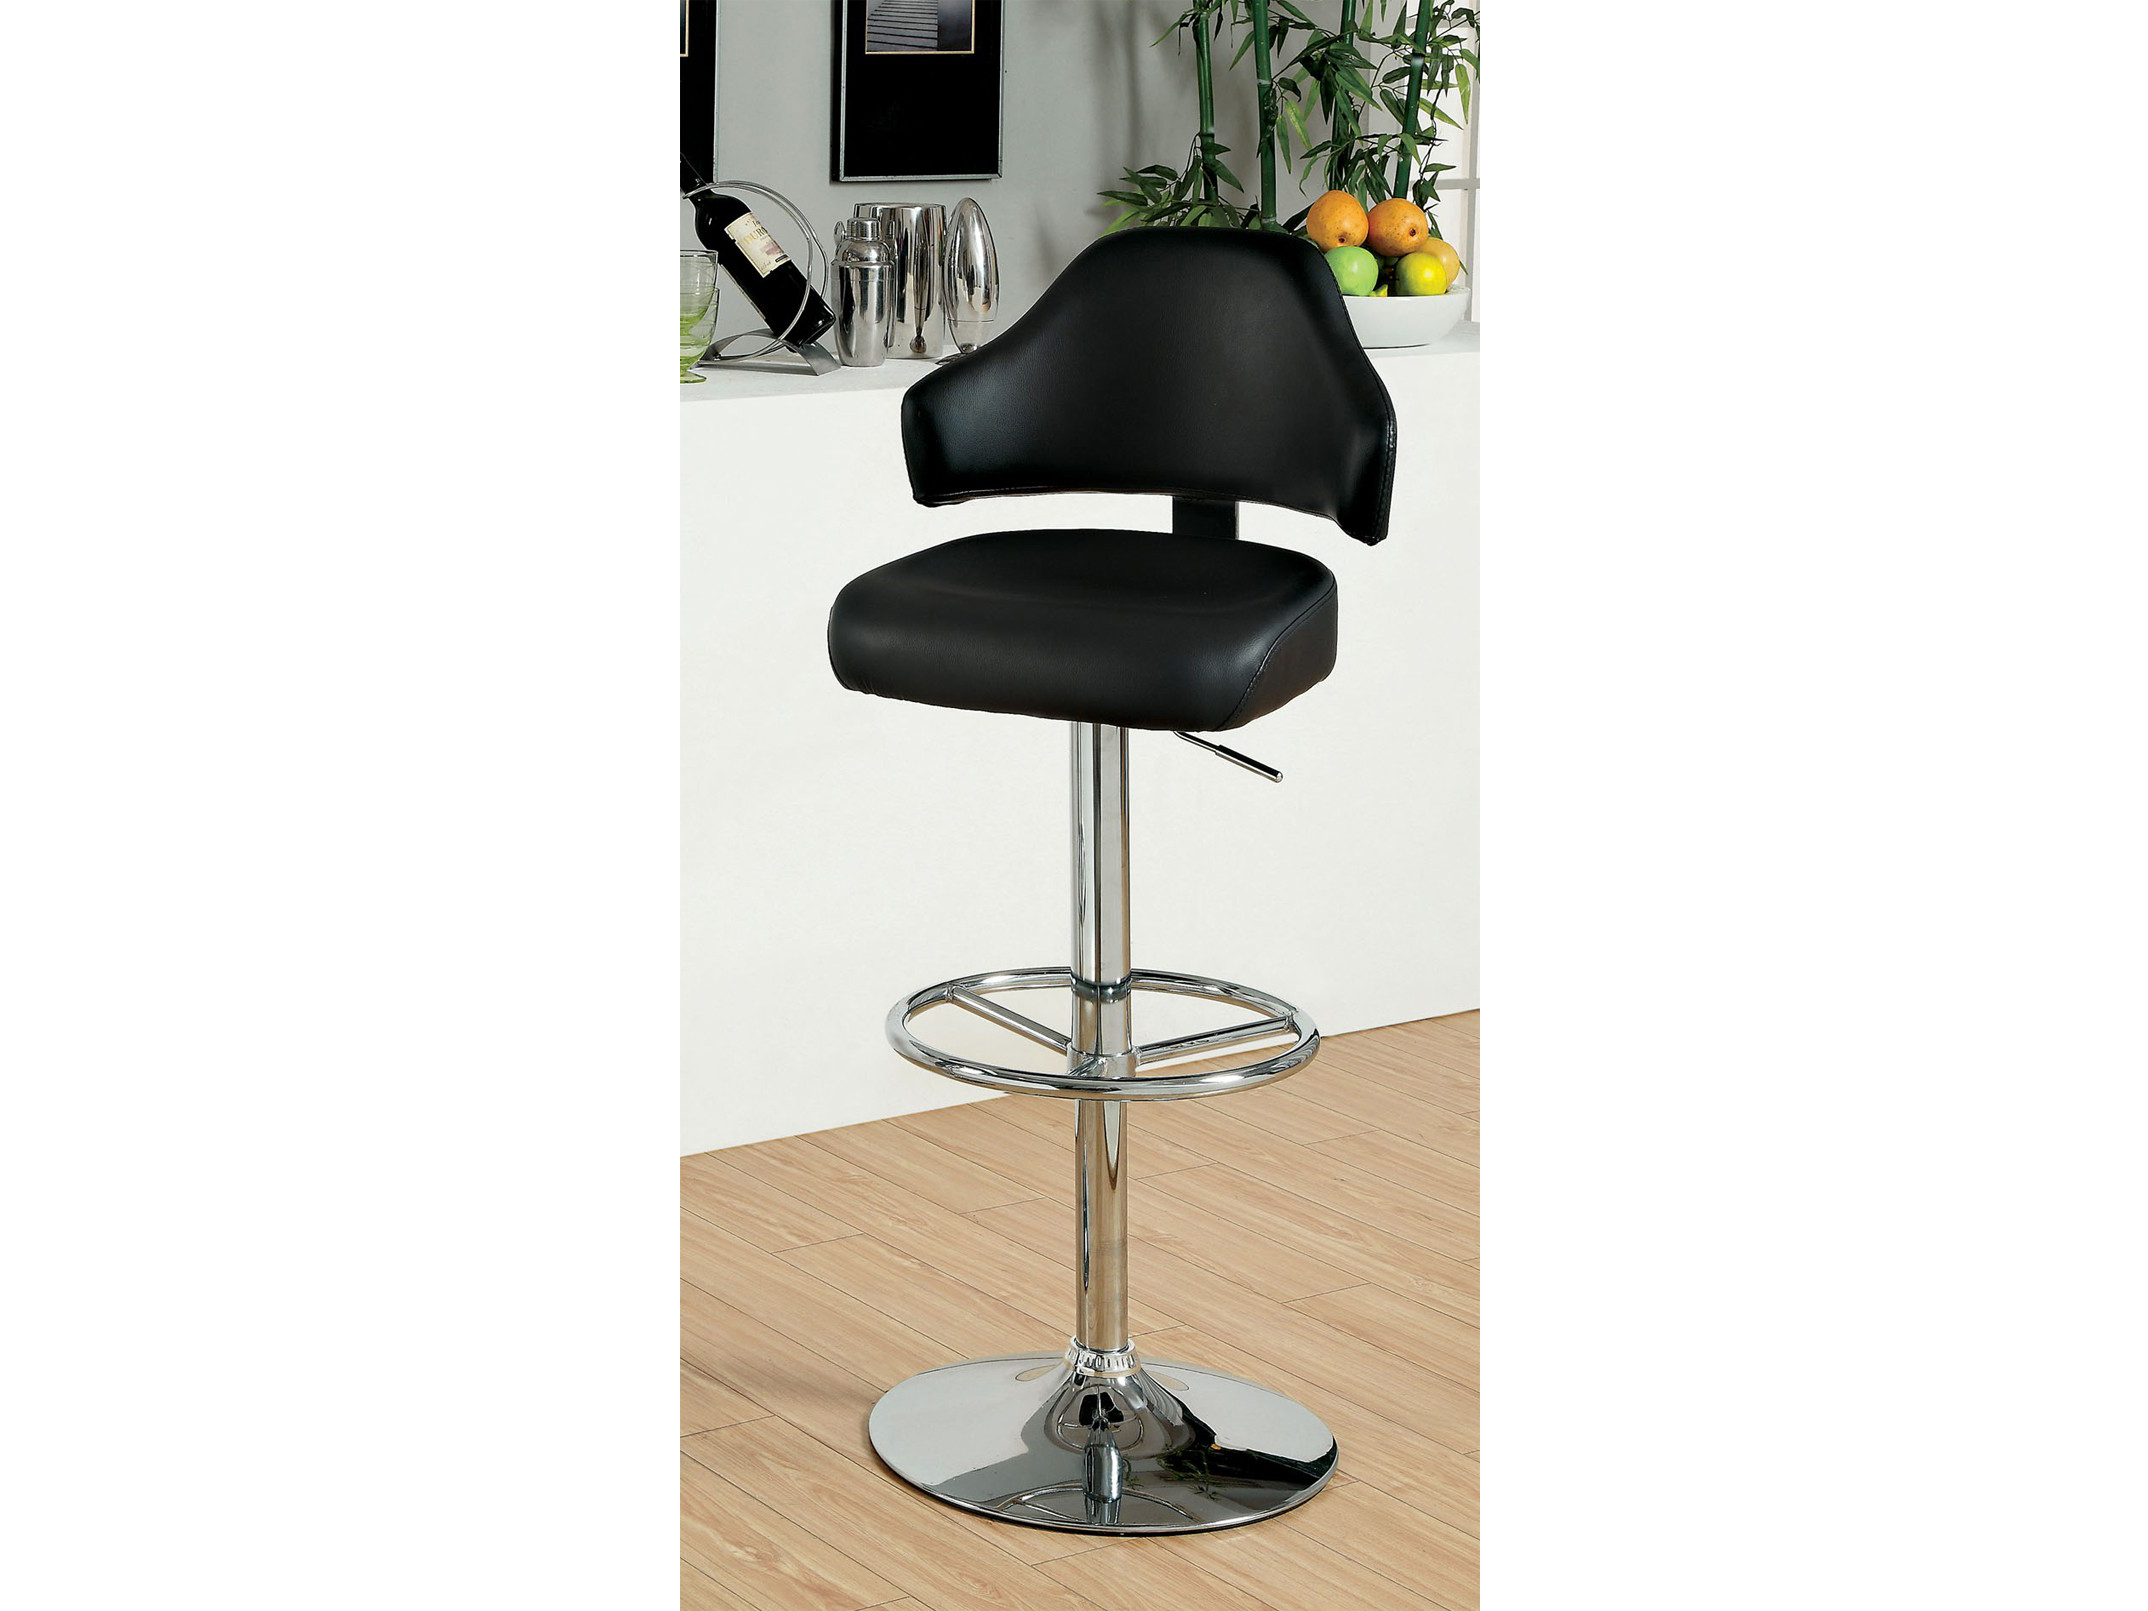 Korpi Black Swivel Bar Stool Shop For Affordable Home